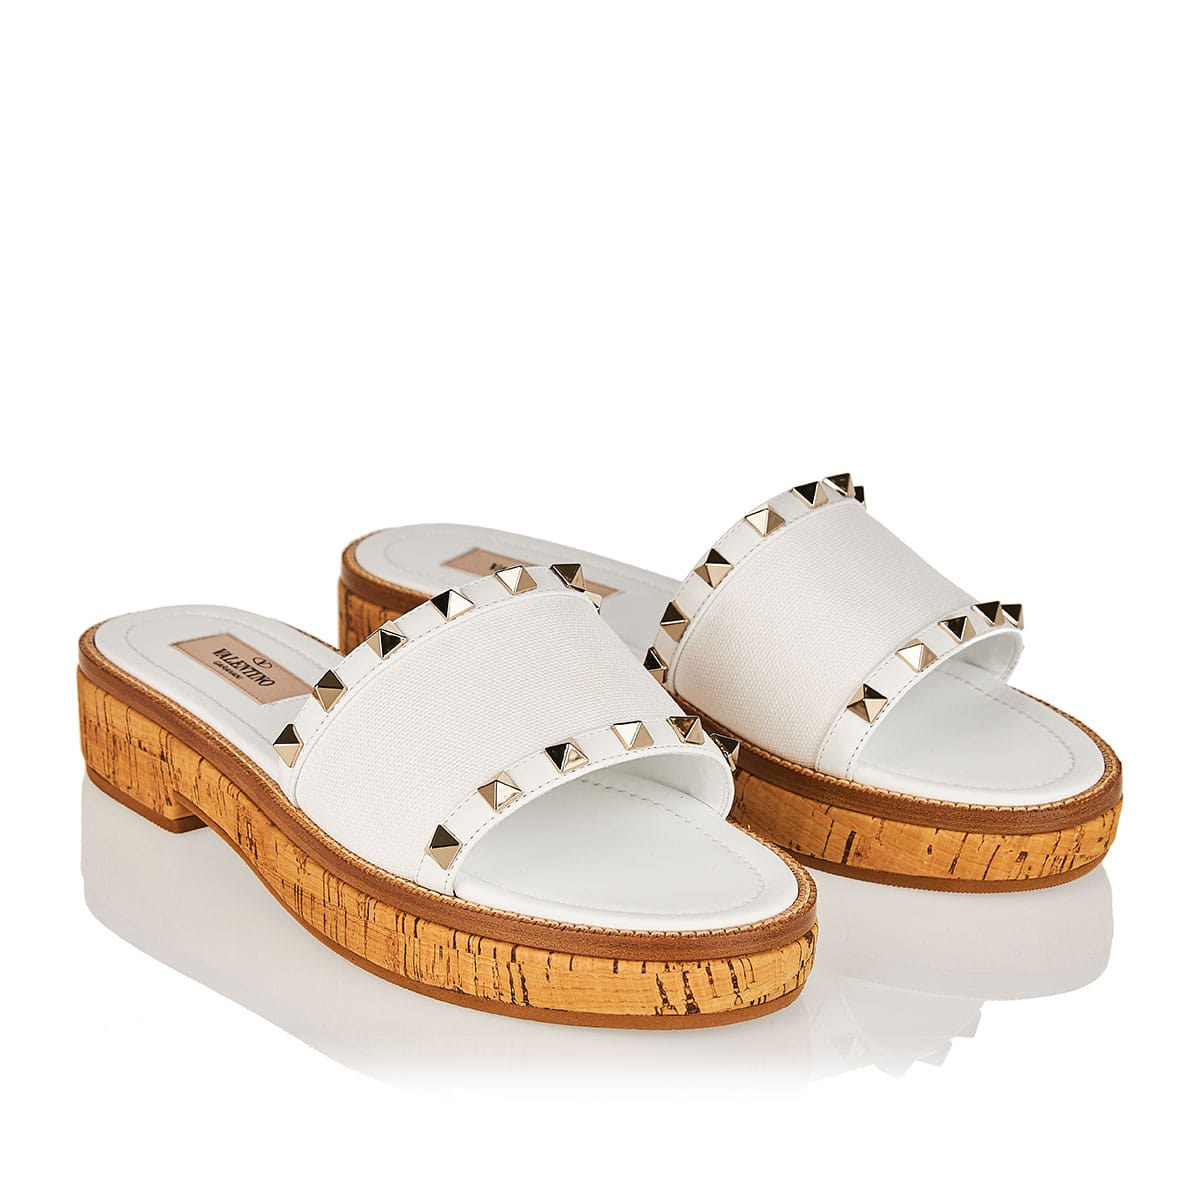 Rockstud leather and cork slides